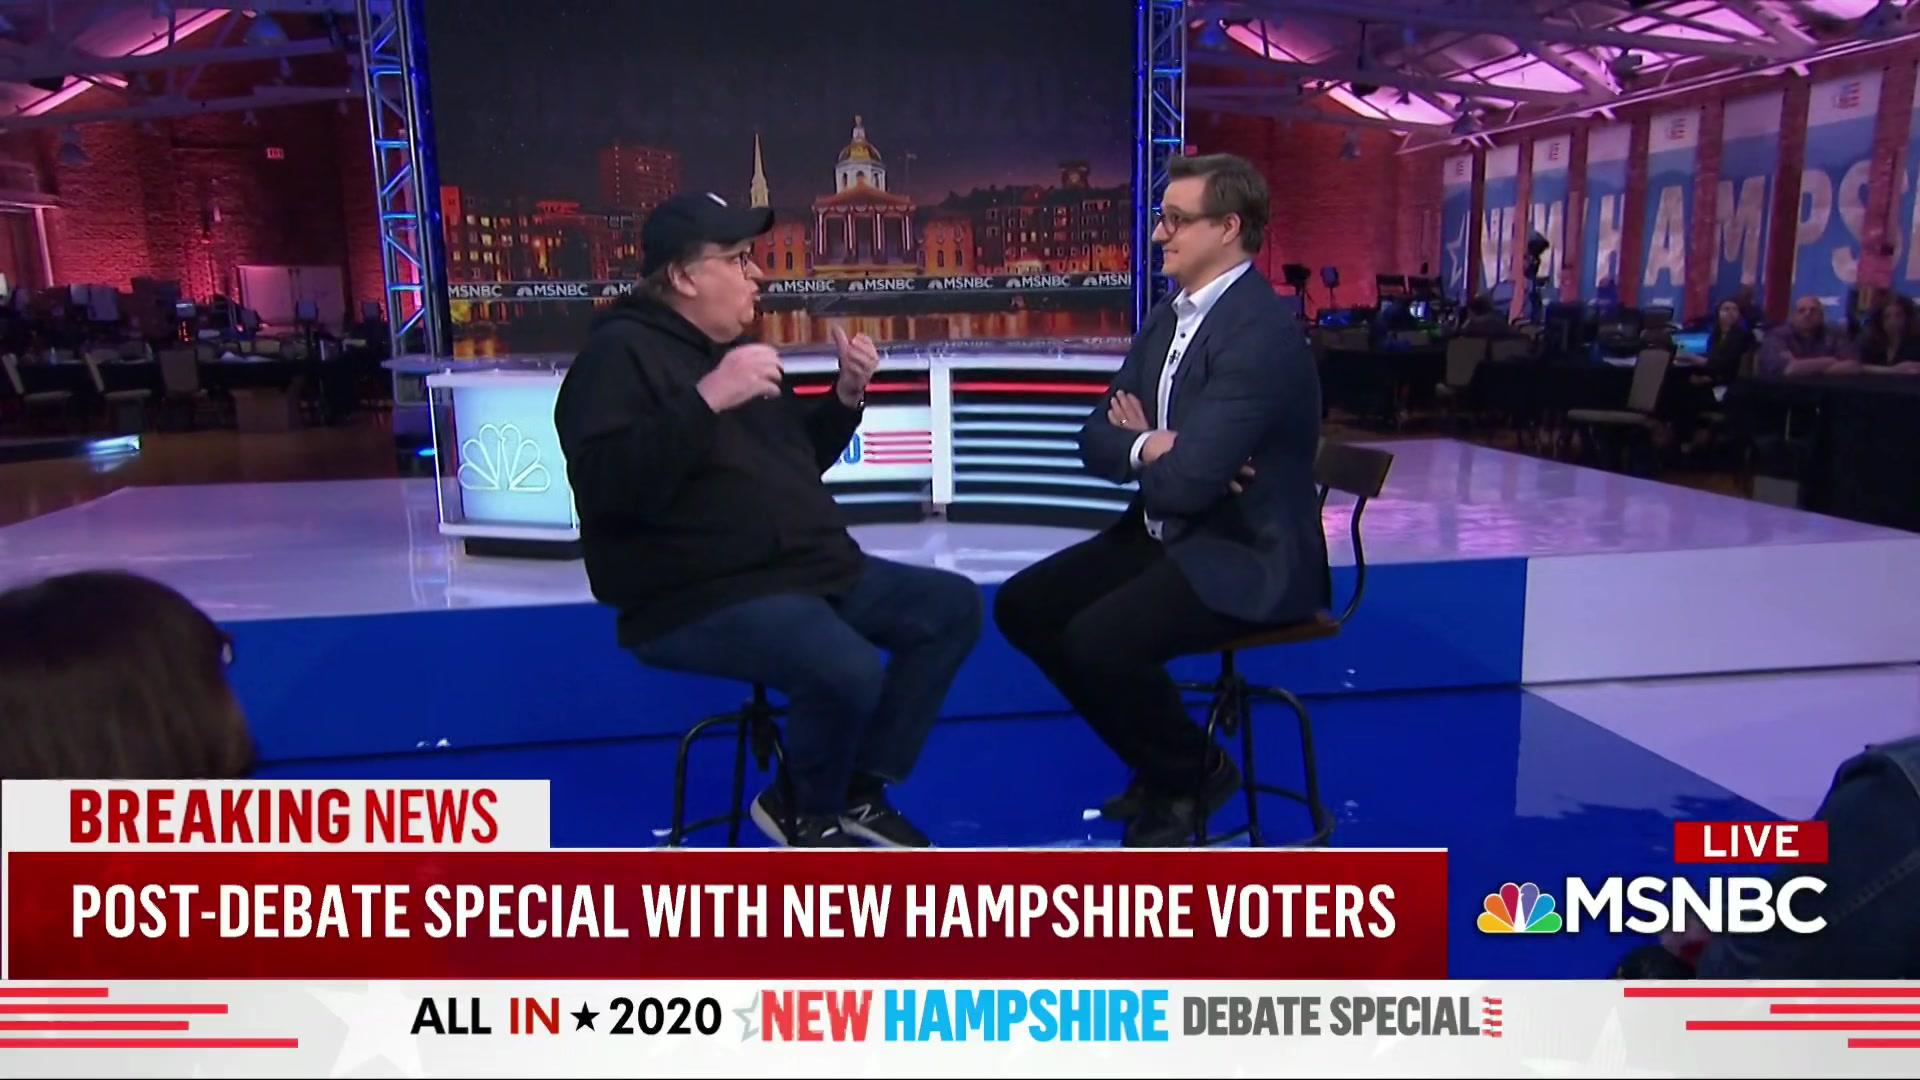 All In with Chris Hayes 2020 02 08 1080p WEBRip x265 HEVC-LM